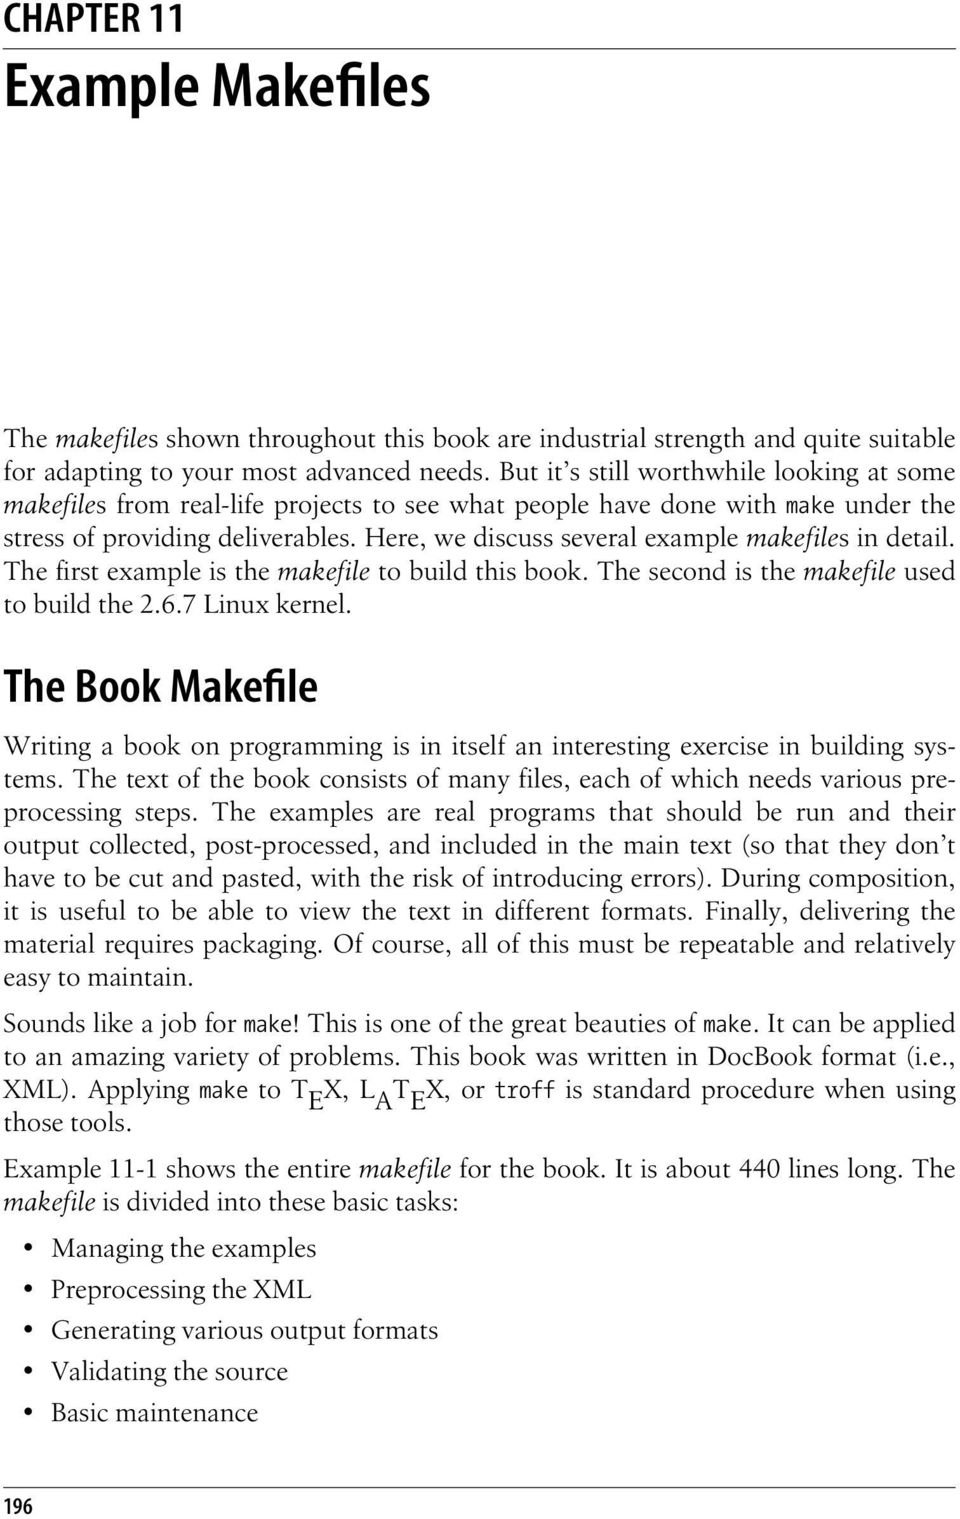 Here, we discuss several example makefiles in detail. The first example is the makefile to build this book. The second is the makefile used to build the 2.6.7 Linux kernel.